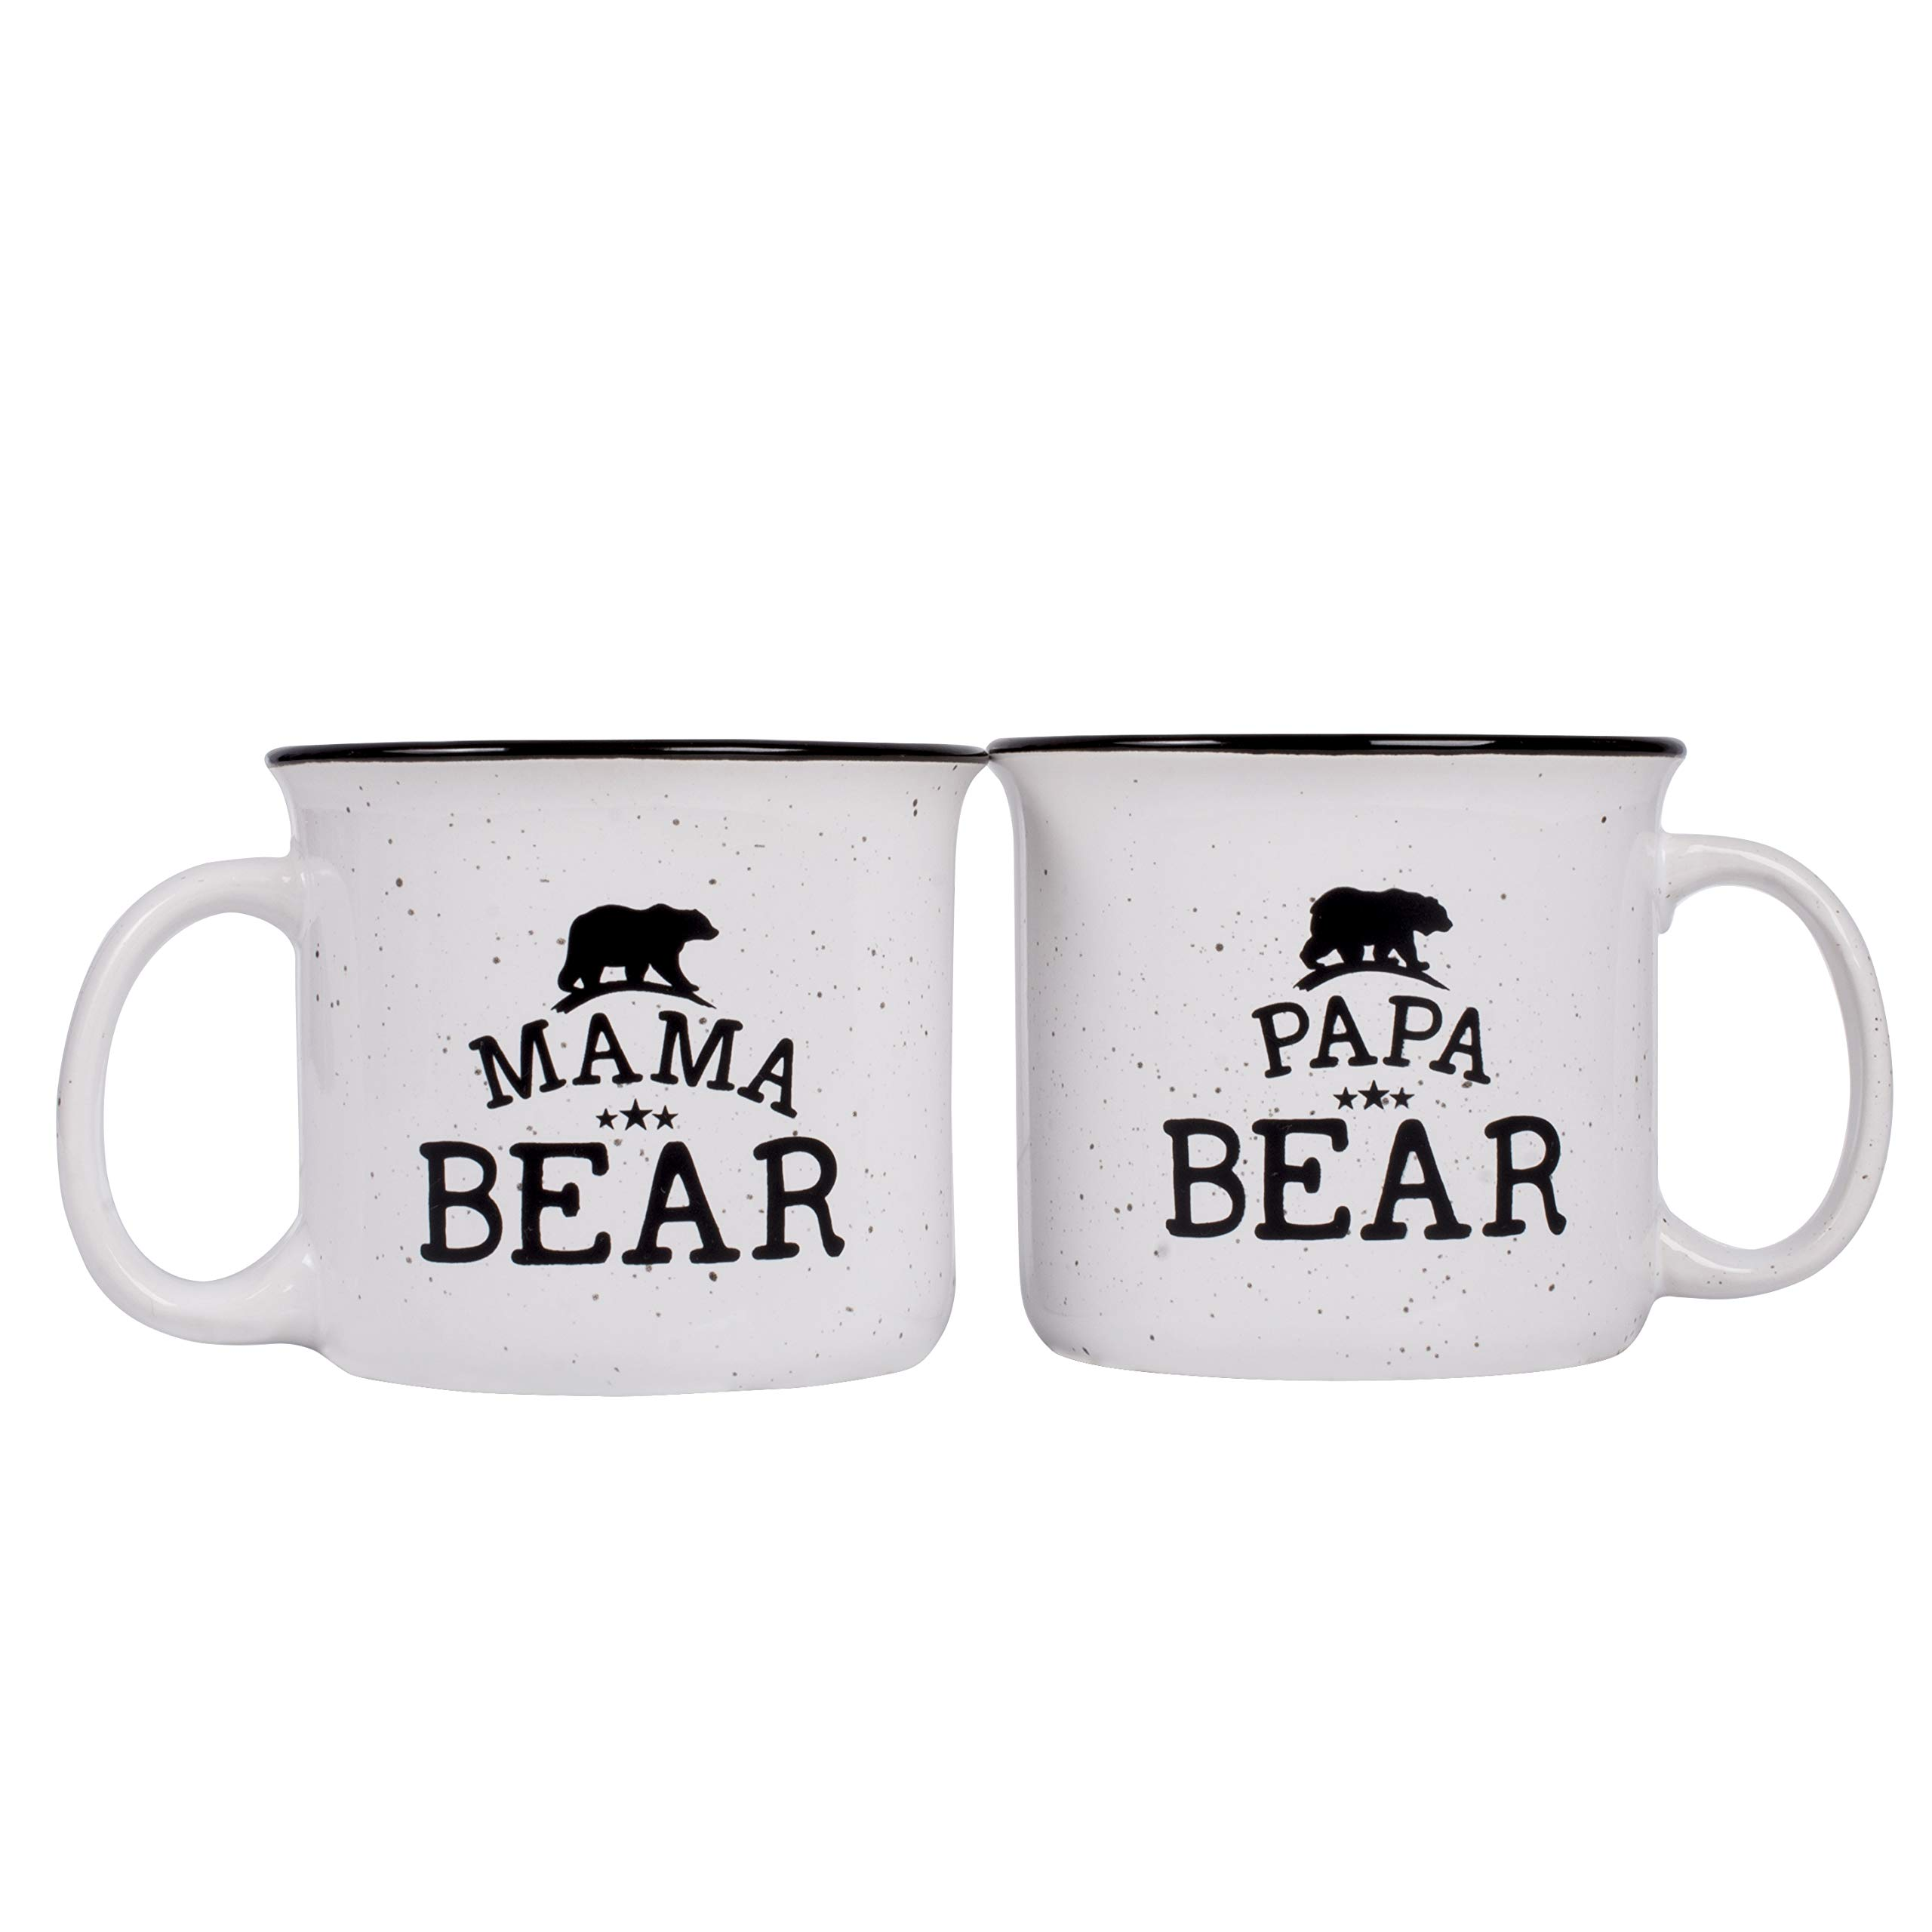 Papa Bear & Mama Bear Campfire Ceramic Mugs, Gift for Couples - White - 15 oz, Retro Coffee Mug for Dad & Mom Gifts Tea Cup, Perfect Christmas Gift